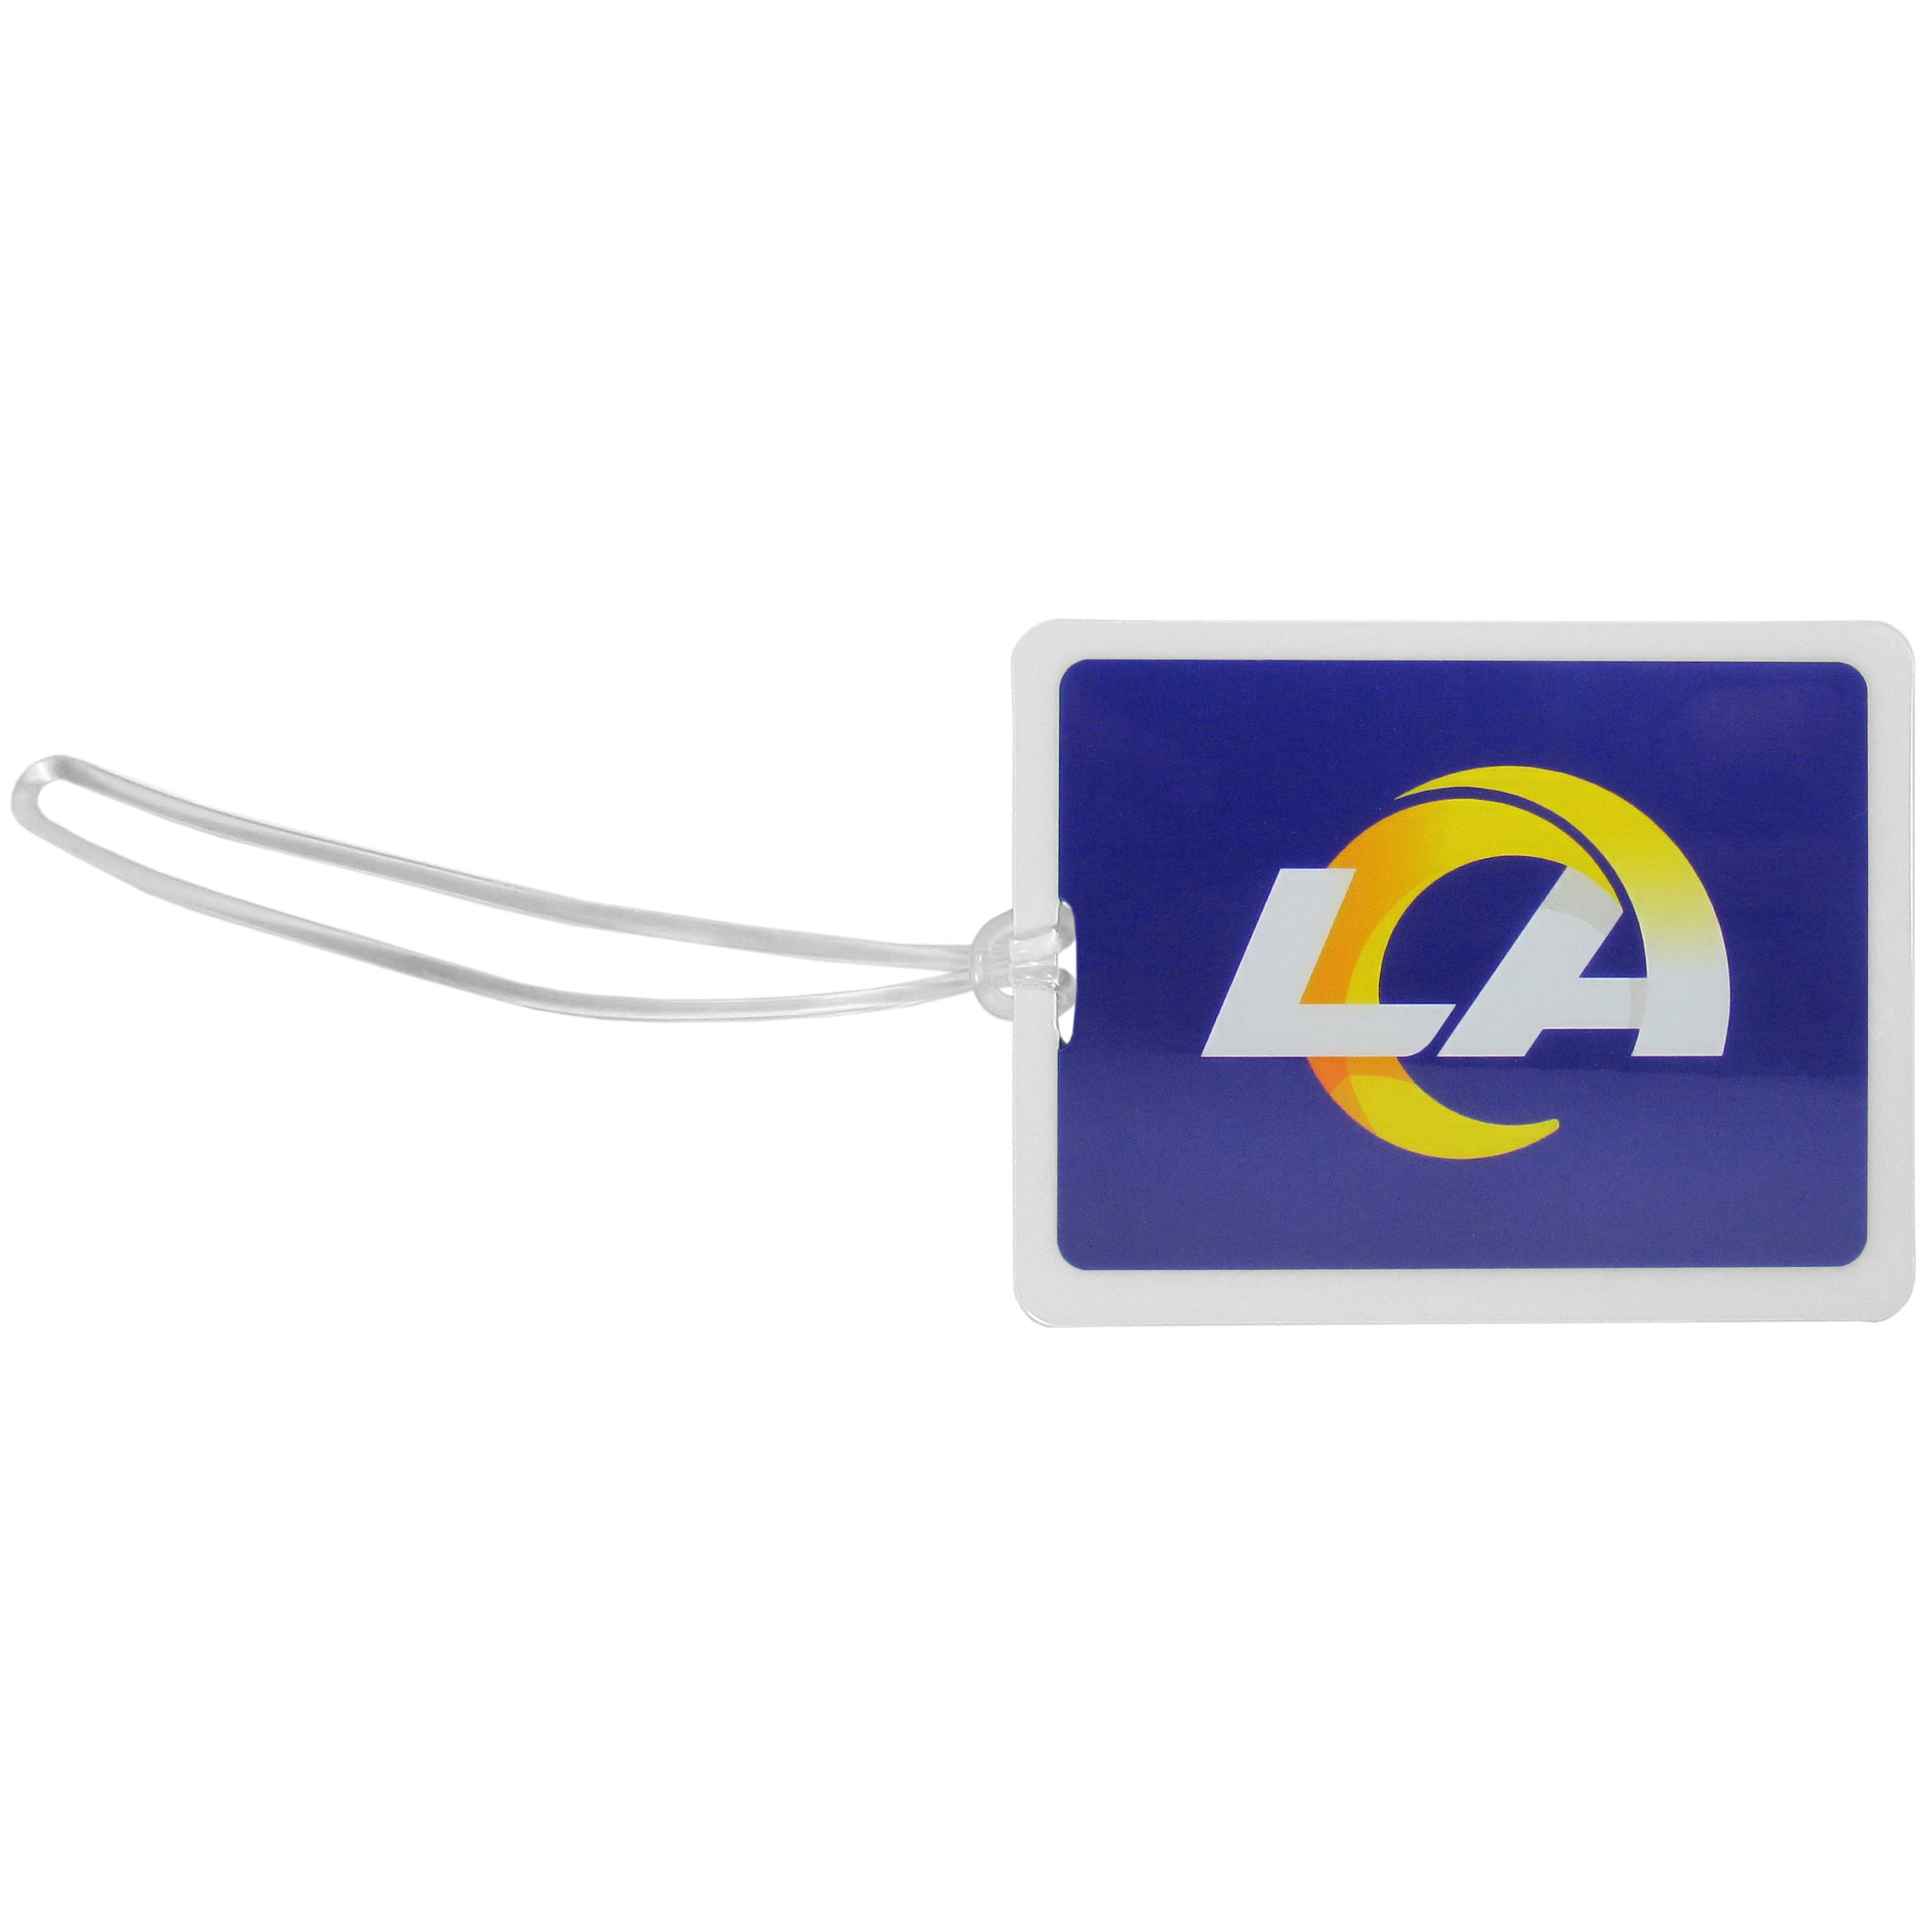 Los Angeles Rams Vinyl Luggage Tag - Tired of trying to spot your suitcase or bag in a sea of luggage? Try our large and colorful Los Angeles Rams luggage tag set. The tag is 4x3 inches and has a 5 inch cord to attach it easily to your bags, backpacks or luggage. The front of the tag features the team logo in a bright, team colored background and you can write you name, address and phone number on the back of the tag.